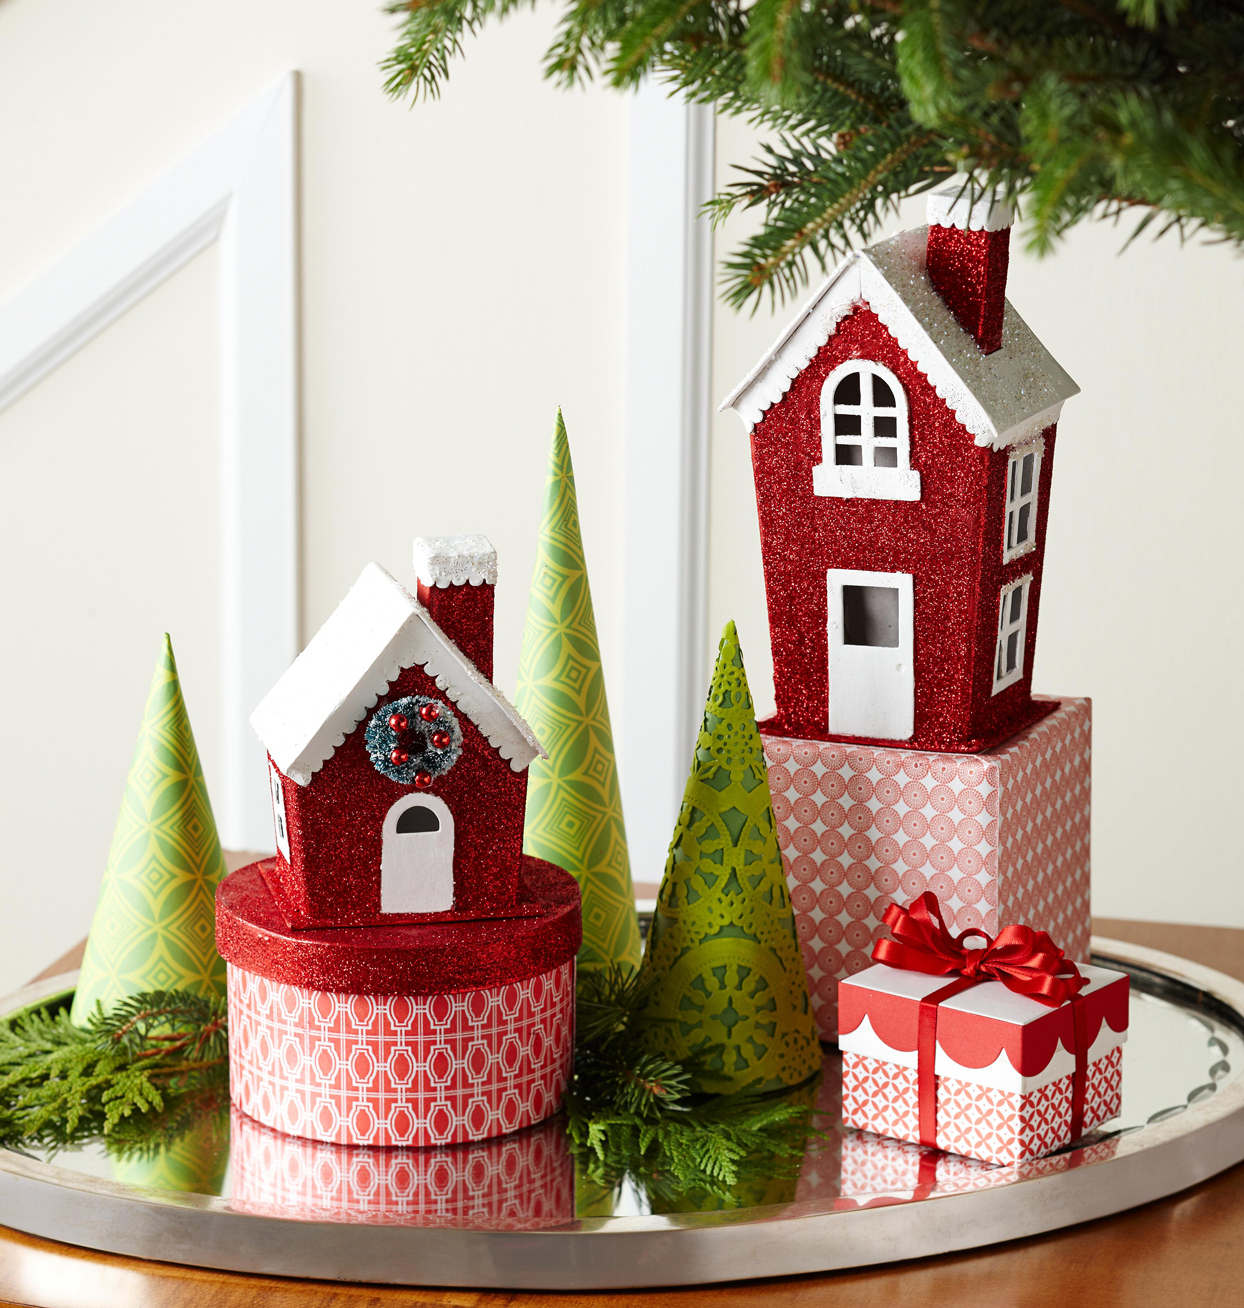 Decorative Christmas houses